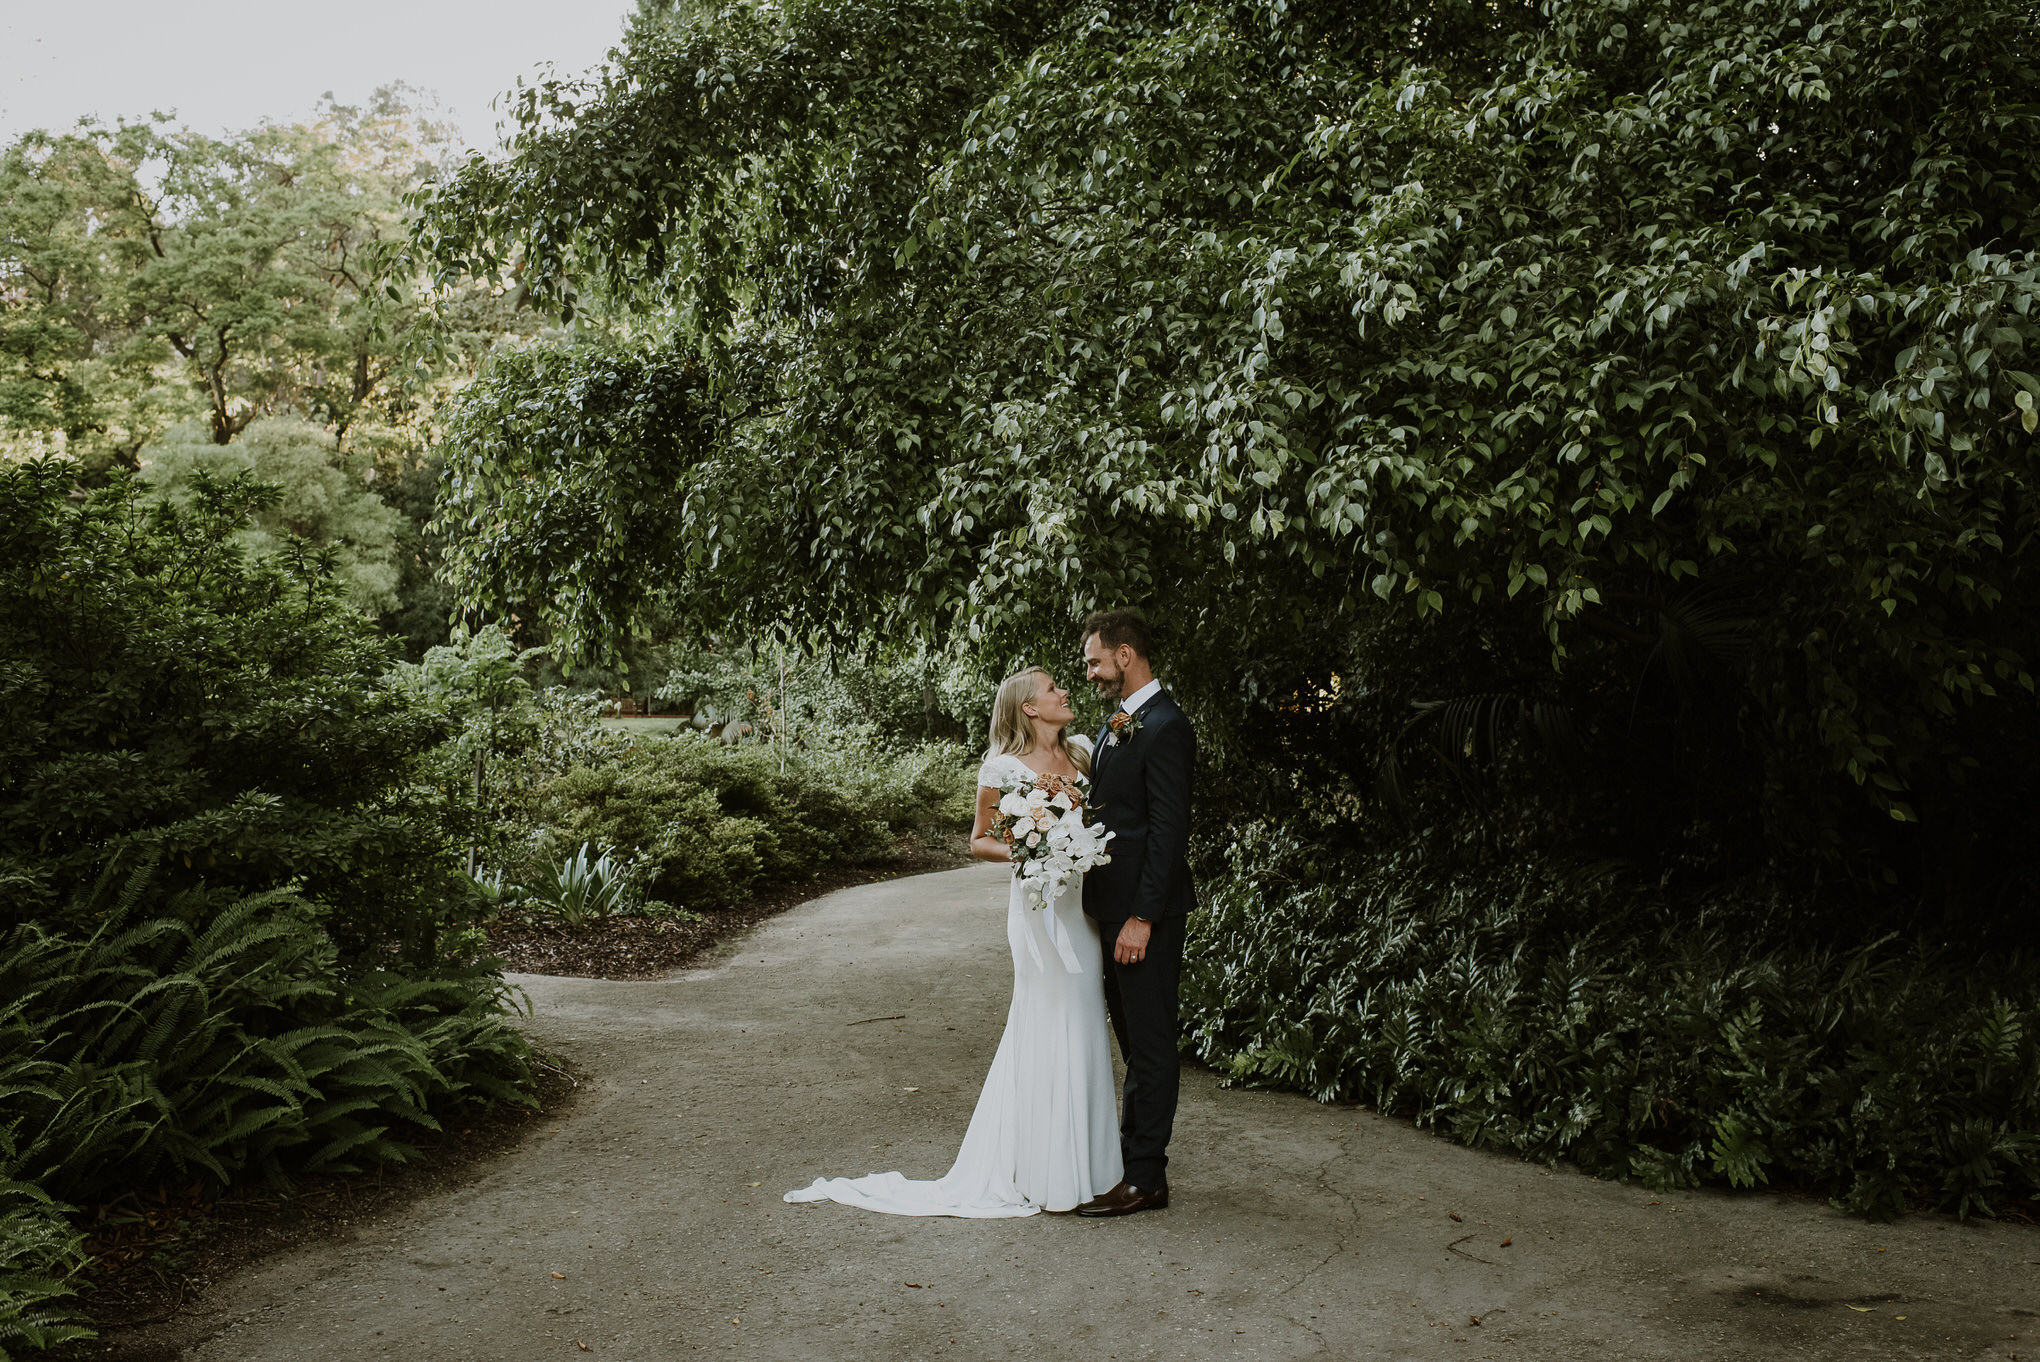 Categories: Weddings-Real Weddings: Lauren and Rob- Photography by Ilkka